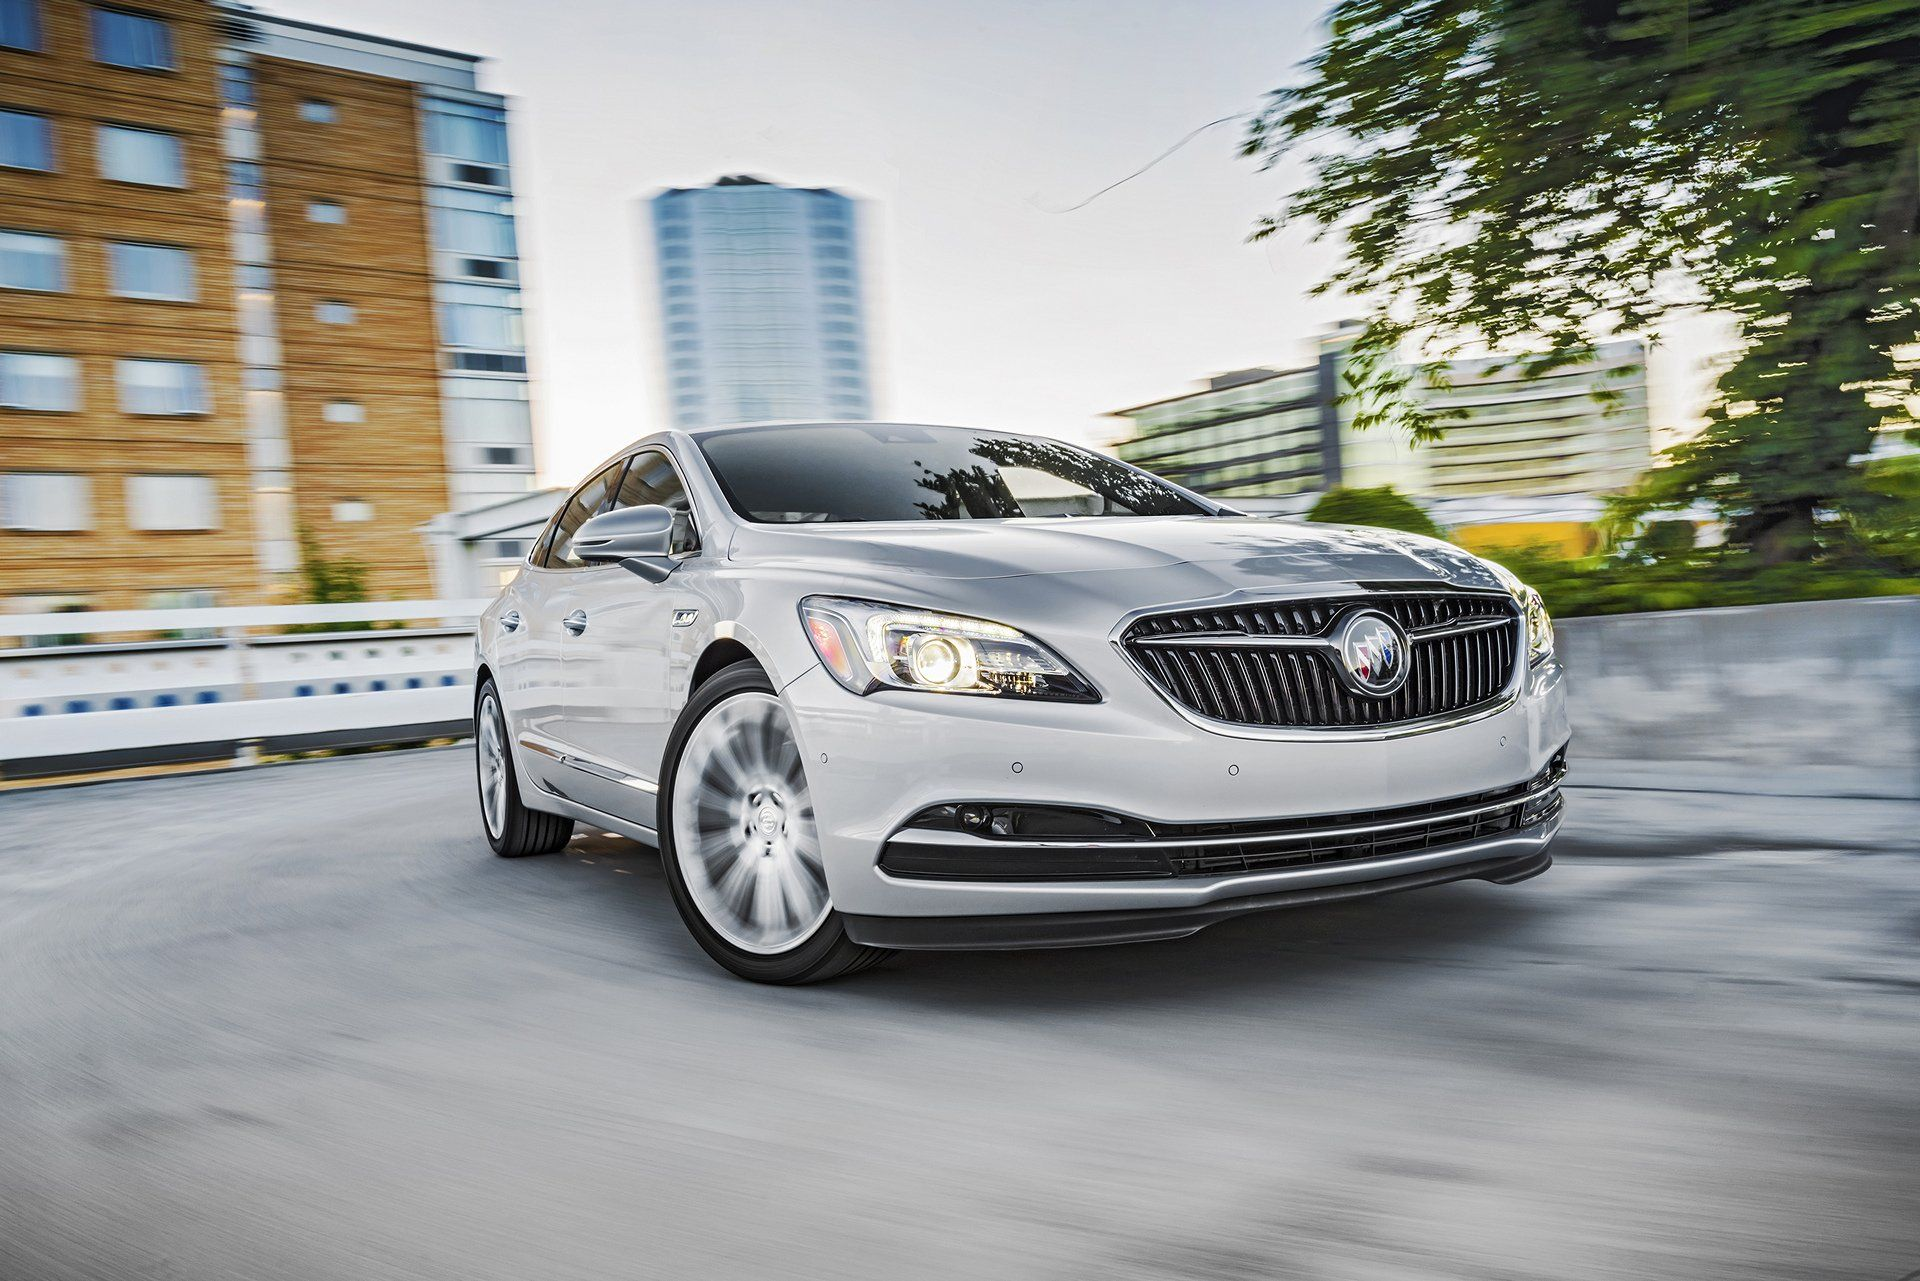 The All New 2017 Buick Lacrosse Introduces The New Face Of Buick Influenced By Buick Lacrosse 2017 Buick Lacrosse Buick